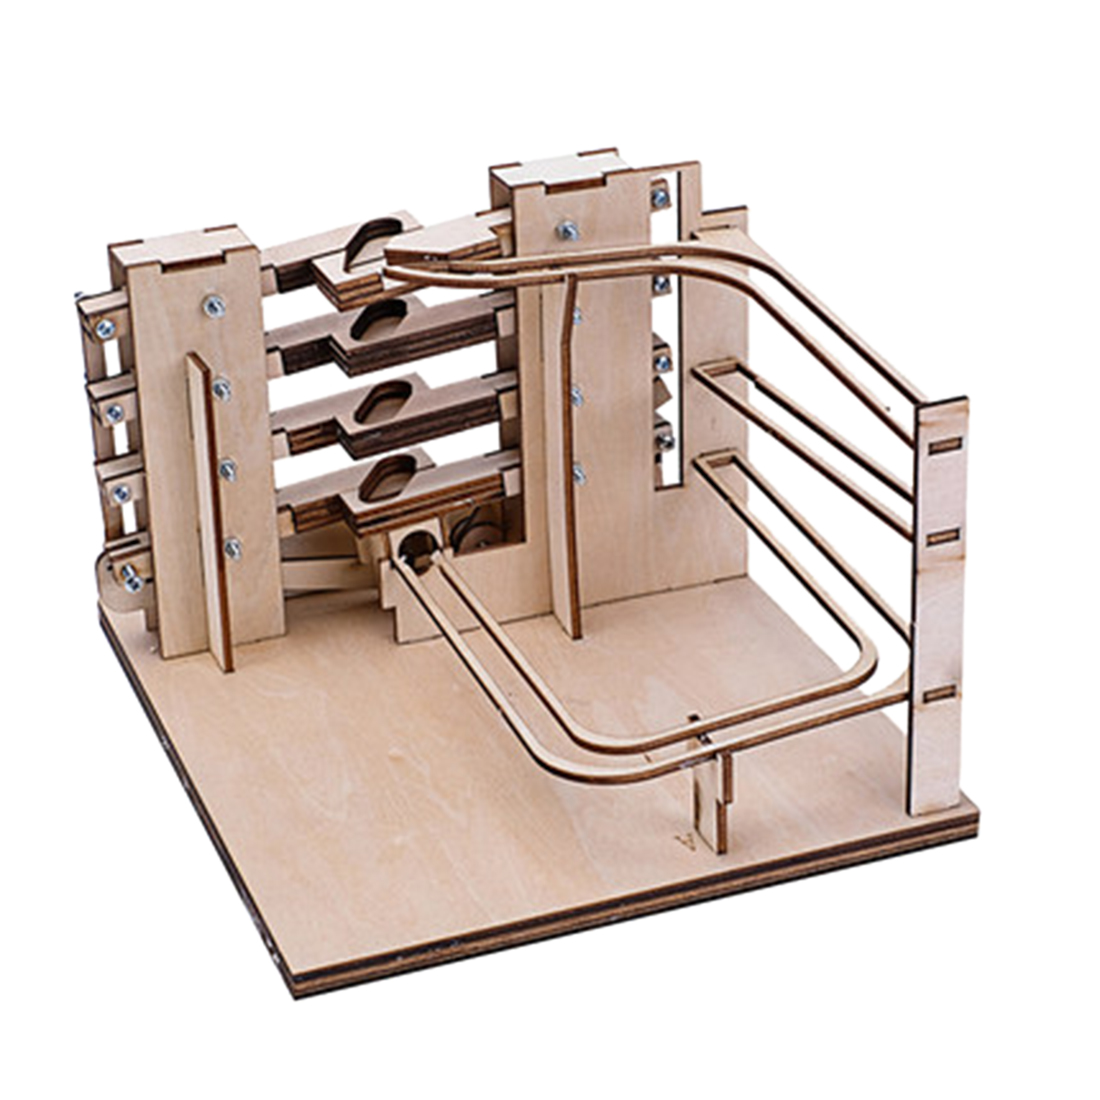 3D Wooden Puzzles DIY Marble Run Assembly Model Building Kits Assembly Model Toy Gift For Chrismtas